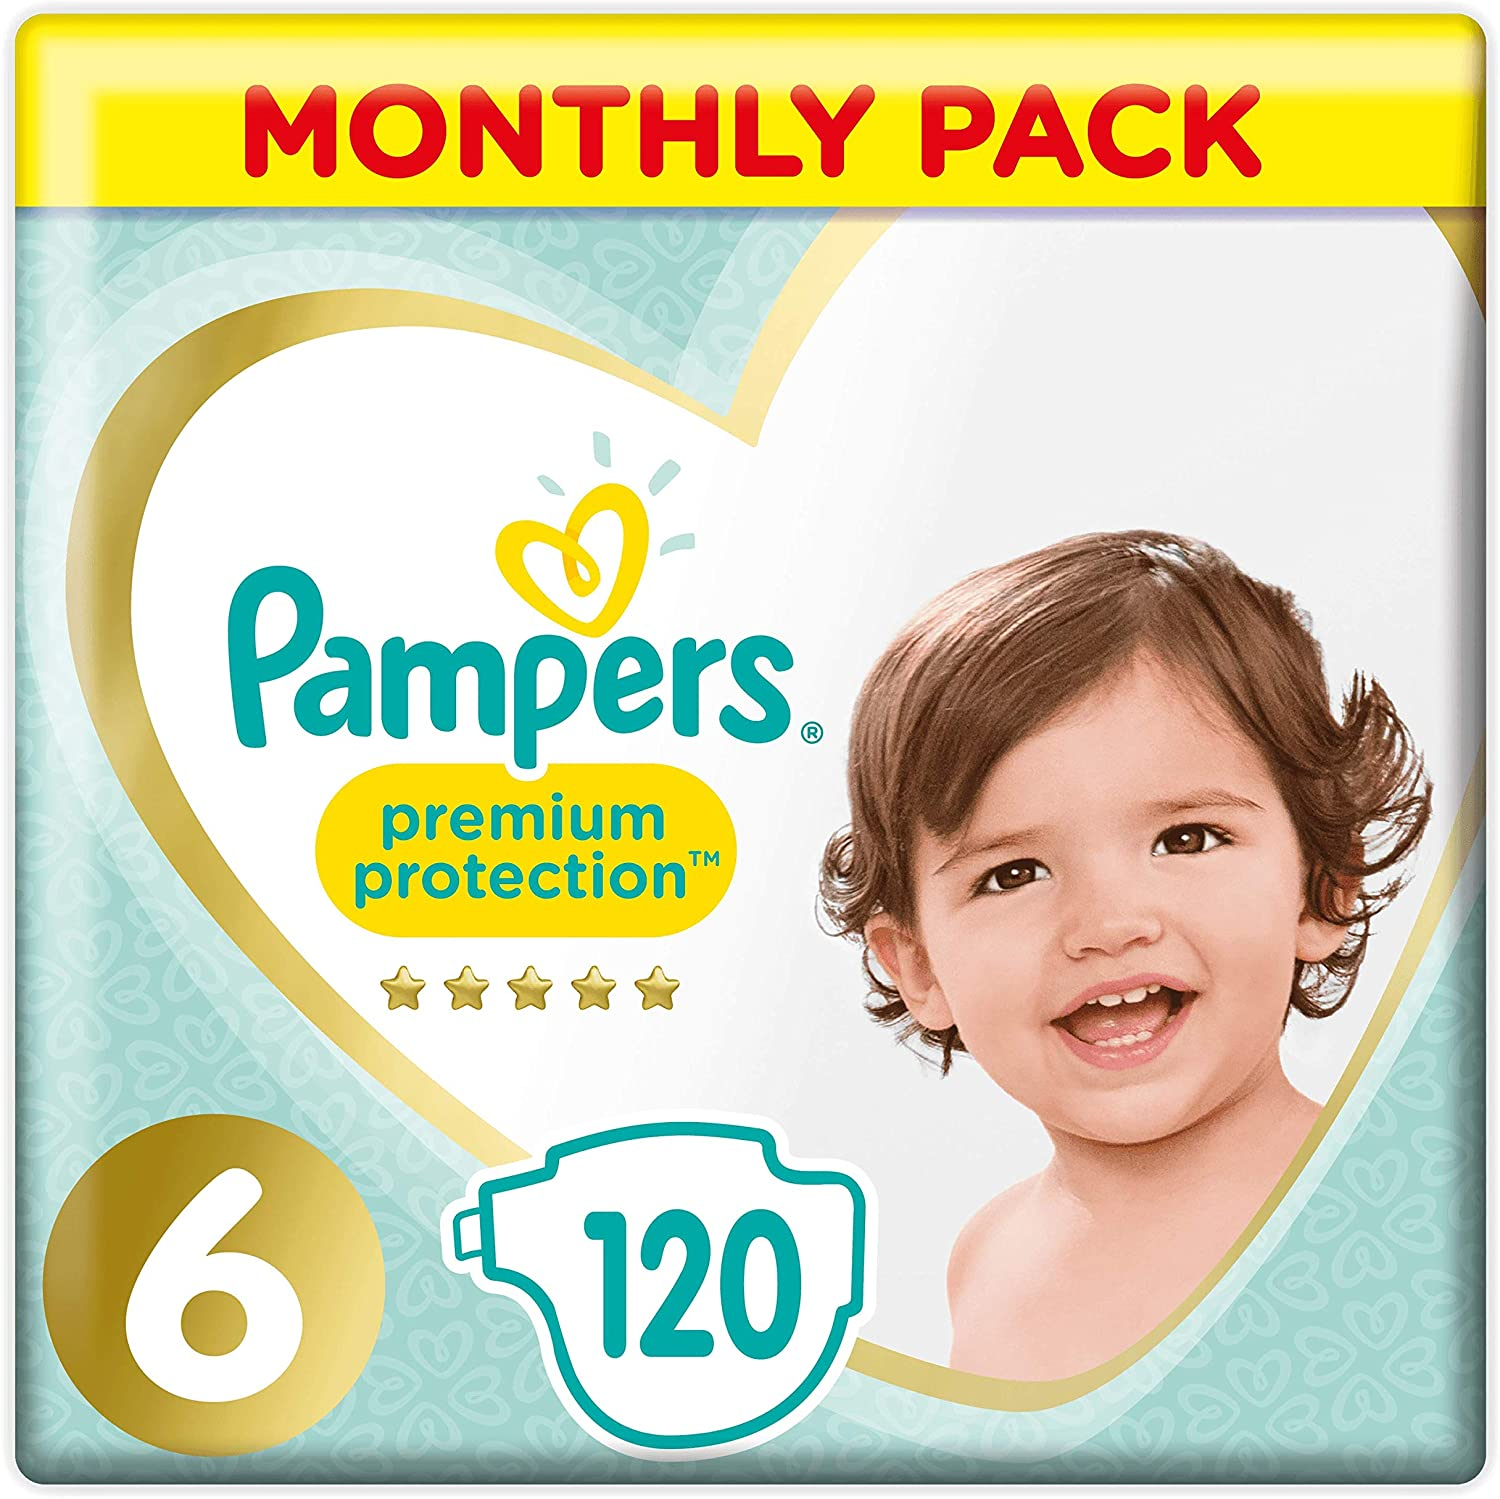 Pampers Premium Protection Size 0 6 x 24 couches Pampers Softest Comfort 24 Nappies Approved By British Skin Foundation 1.5-2.5 kg